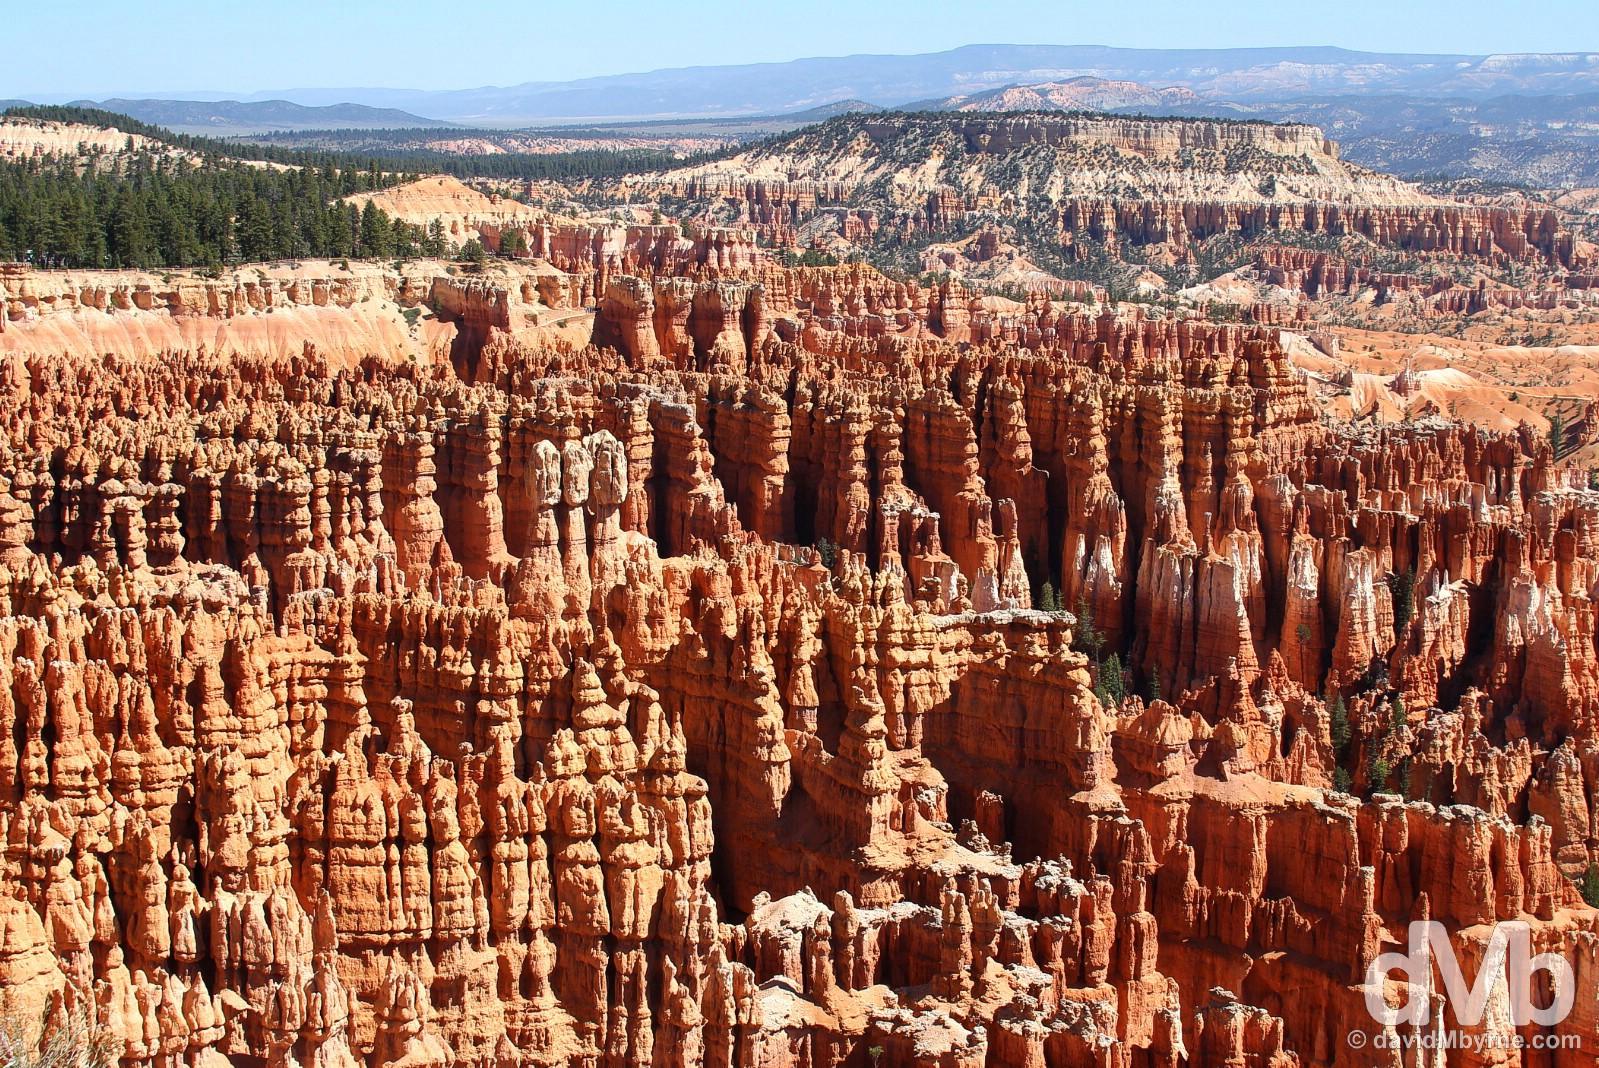 The Bryce Amphitheater of Bryce Canyon National Park, Utah, USA. September 8, 2016.